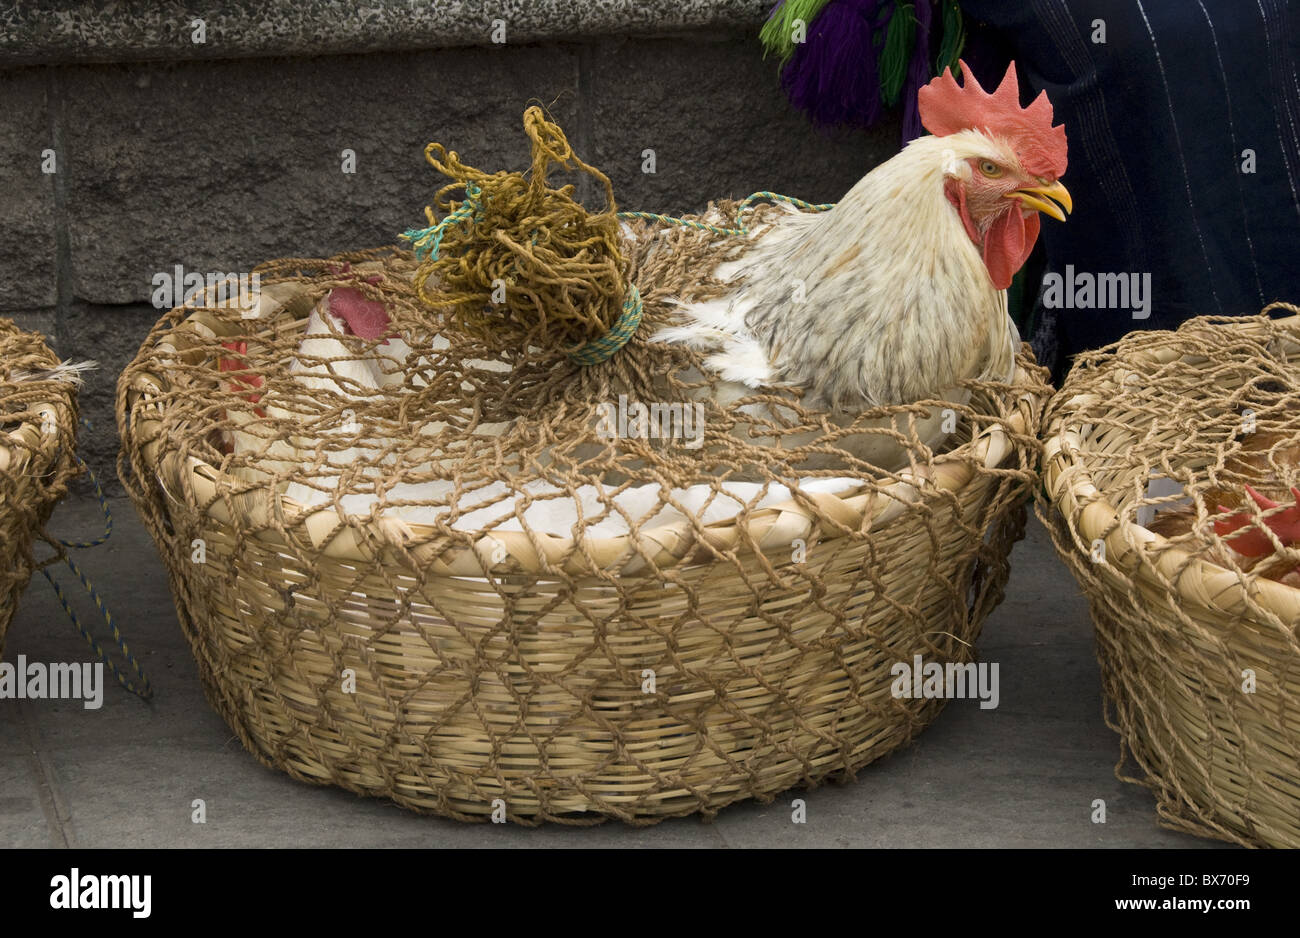 Chickens for sale at the Friday market in the village of Solola, near Lake Atitlan, Guatemala, Central America - Stock Image